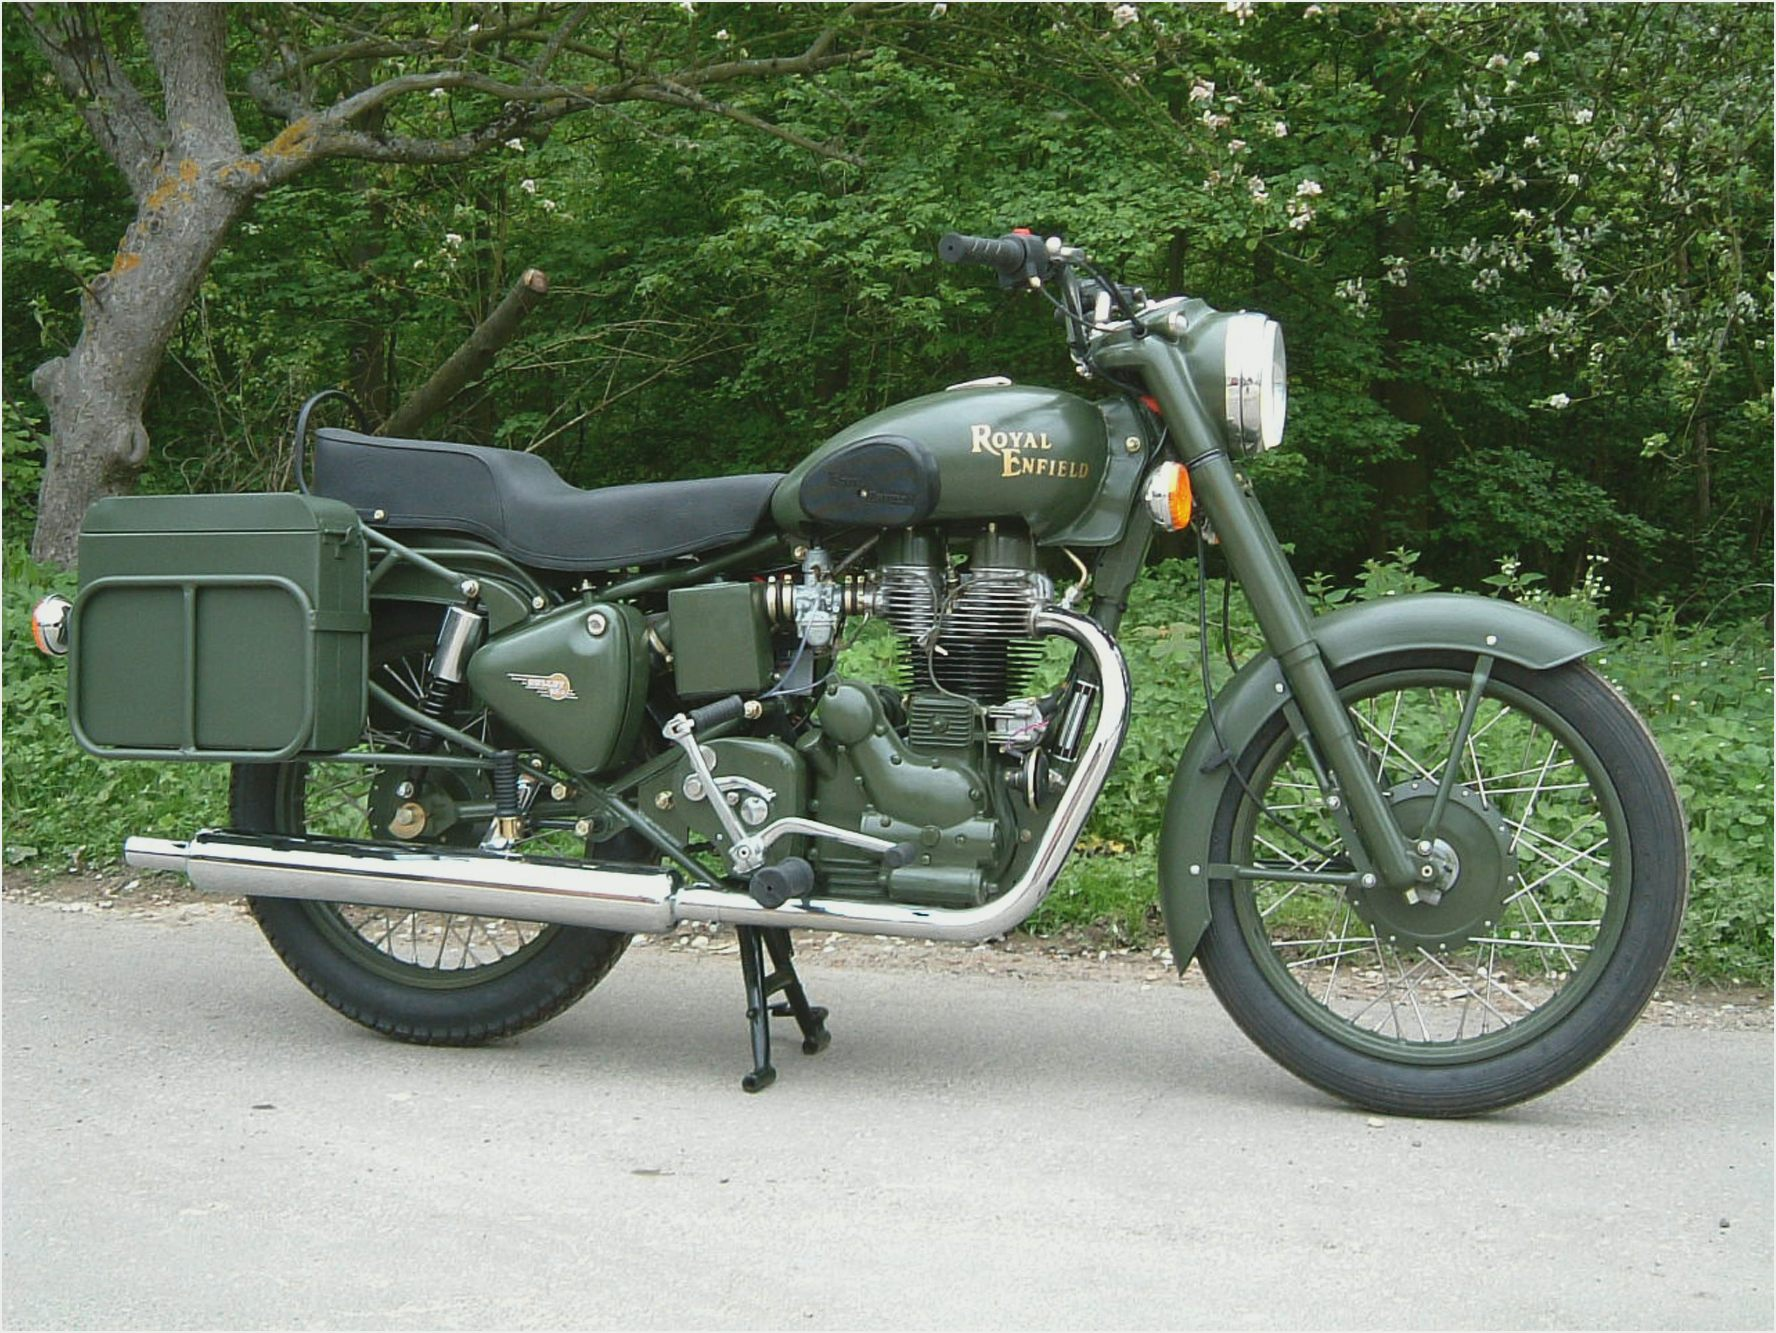 1970 Triumph Trophy 650 Pic 6 Wiring Diagram Royal Enfield Bullet 350 Army 1989 Images 122463